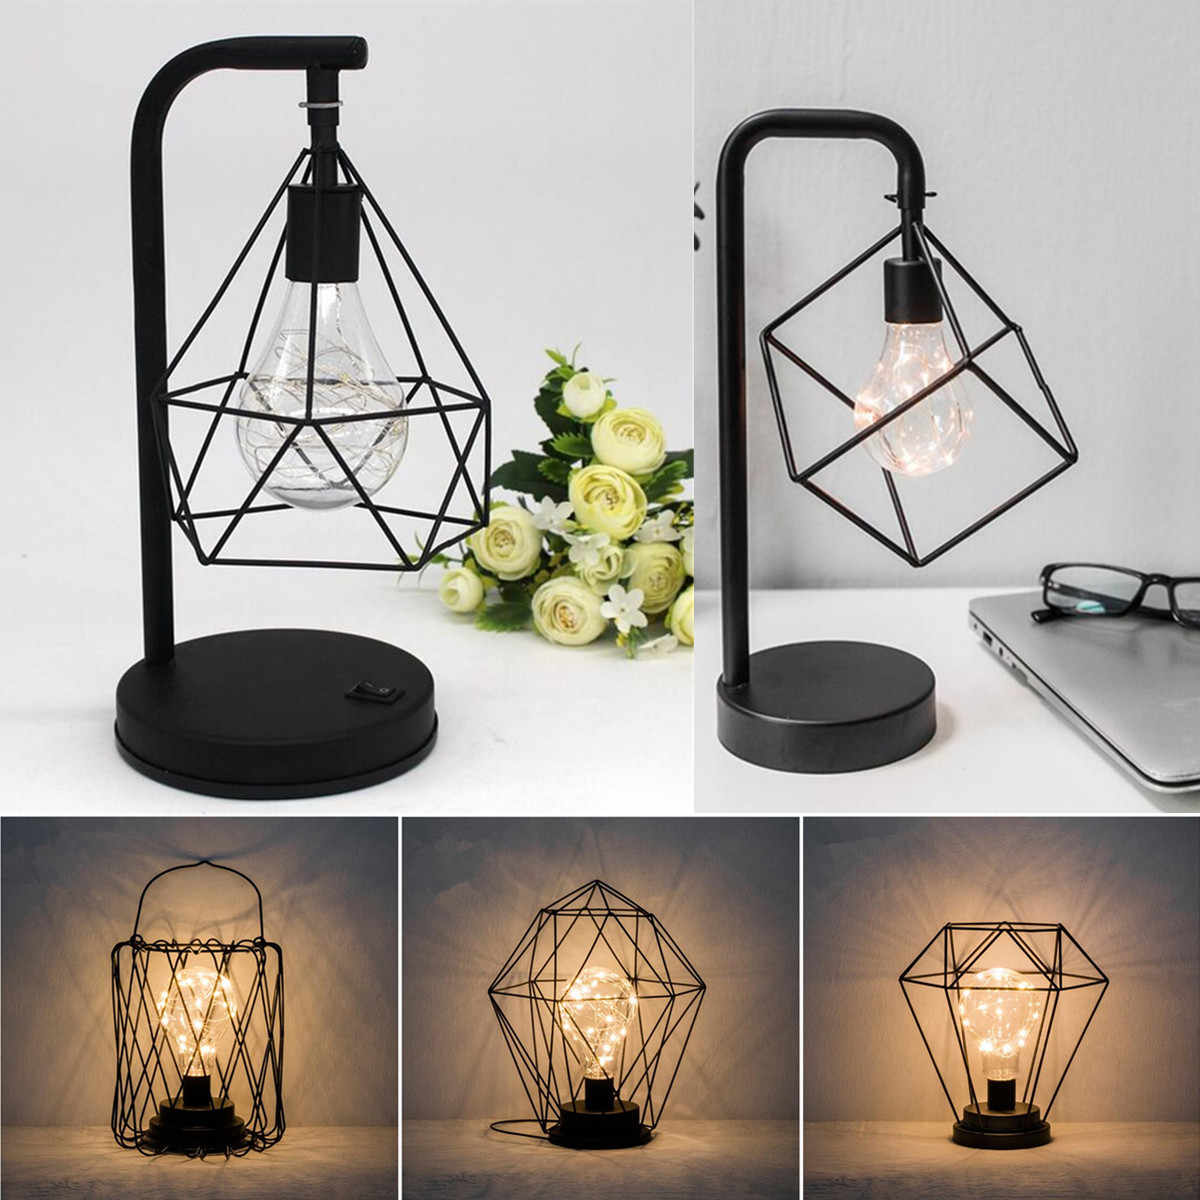 Marble Base Shade Copper Geometric Light Modern Industrial Curved Table Lamp Indoor Lighting Bedroom Diamond Table Lights Table Lamps Aliexpress